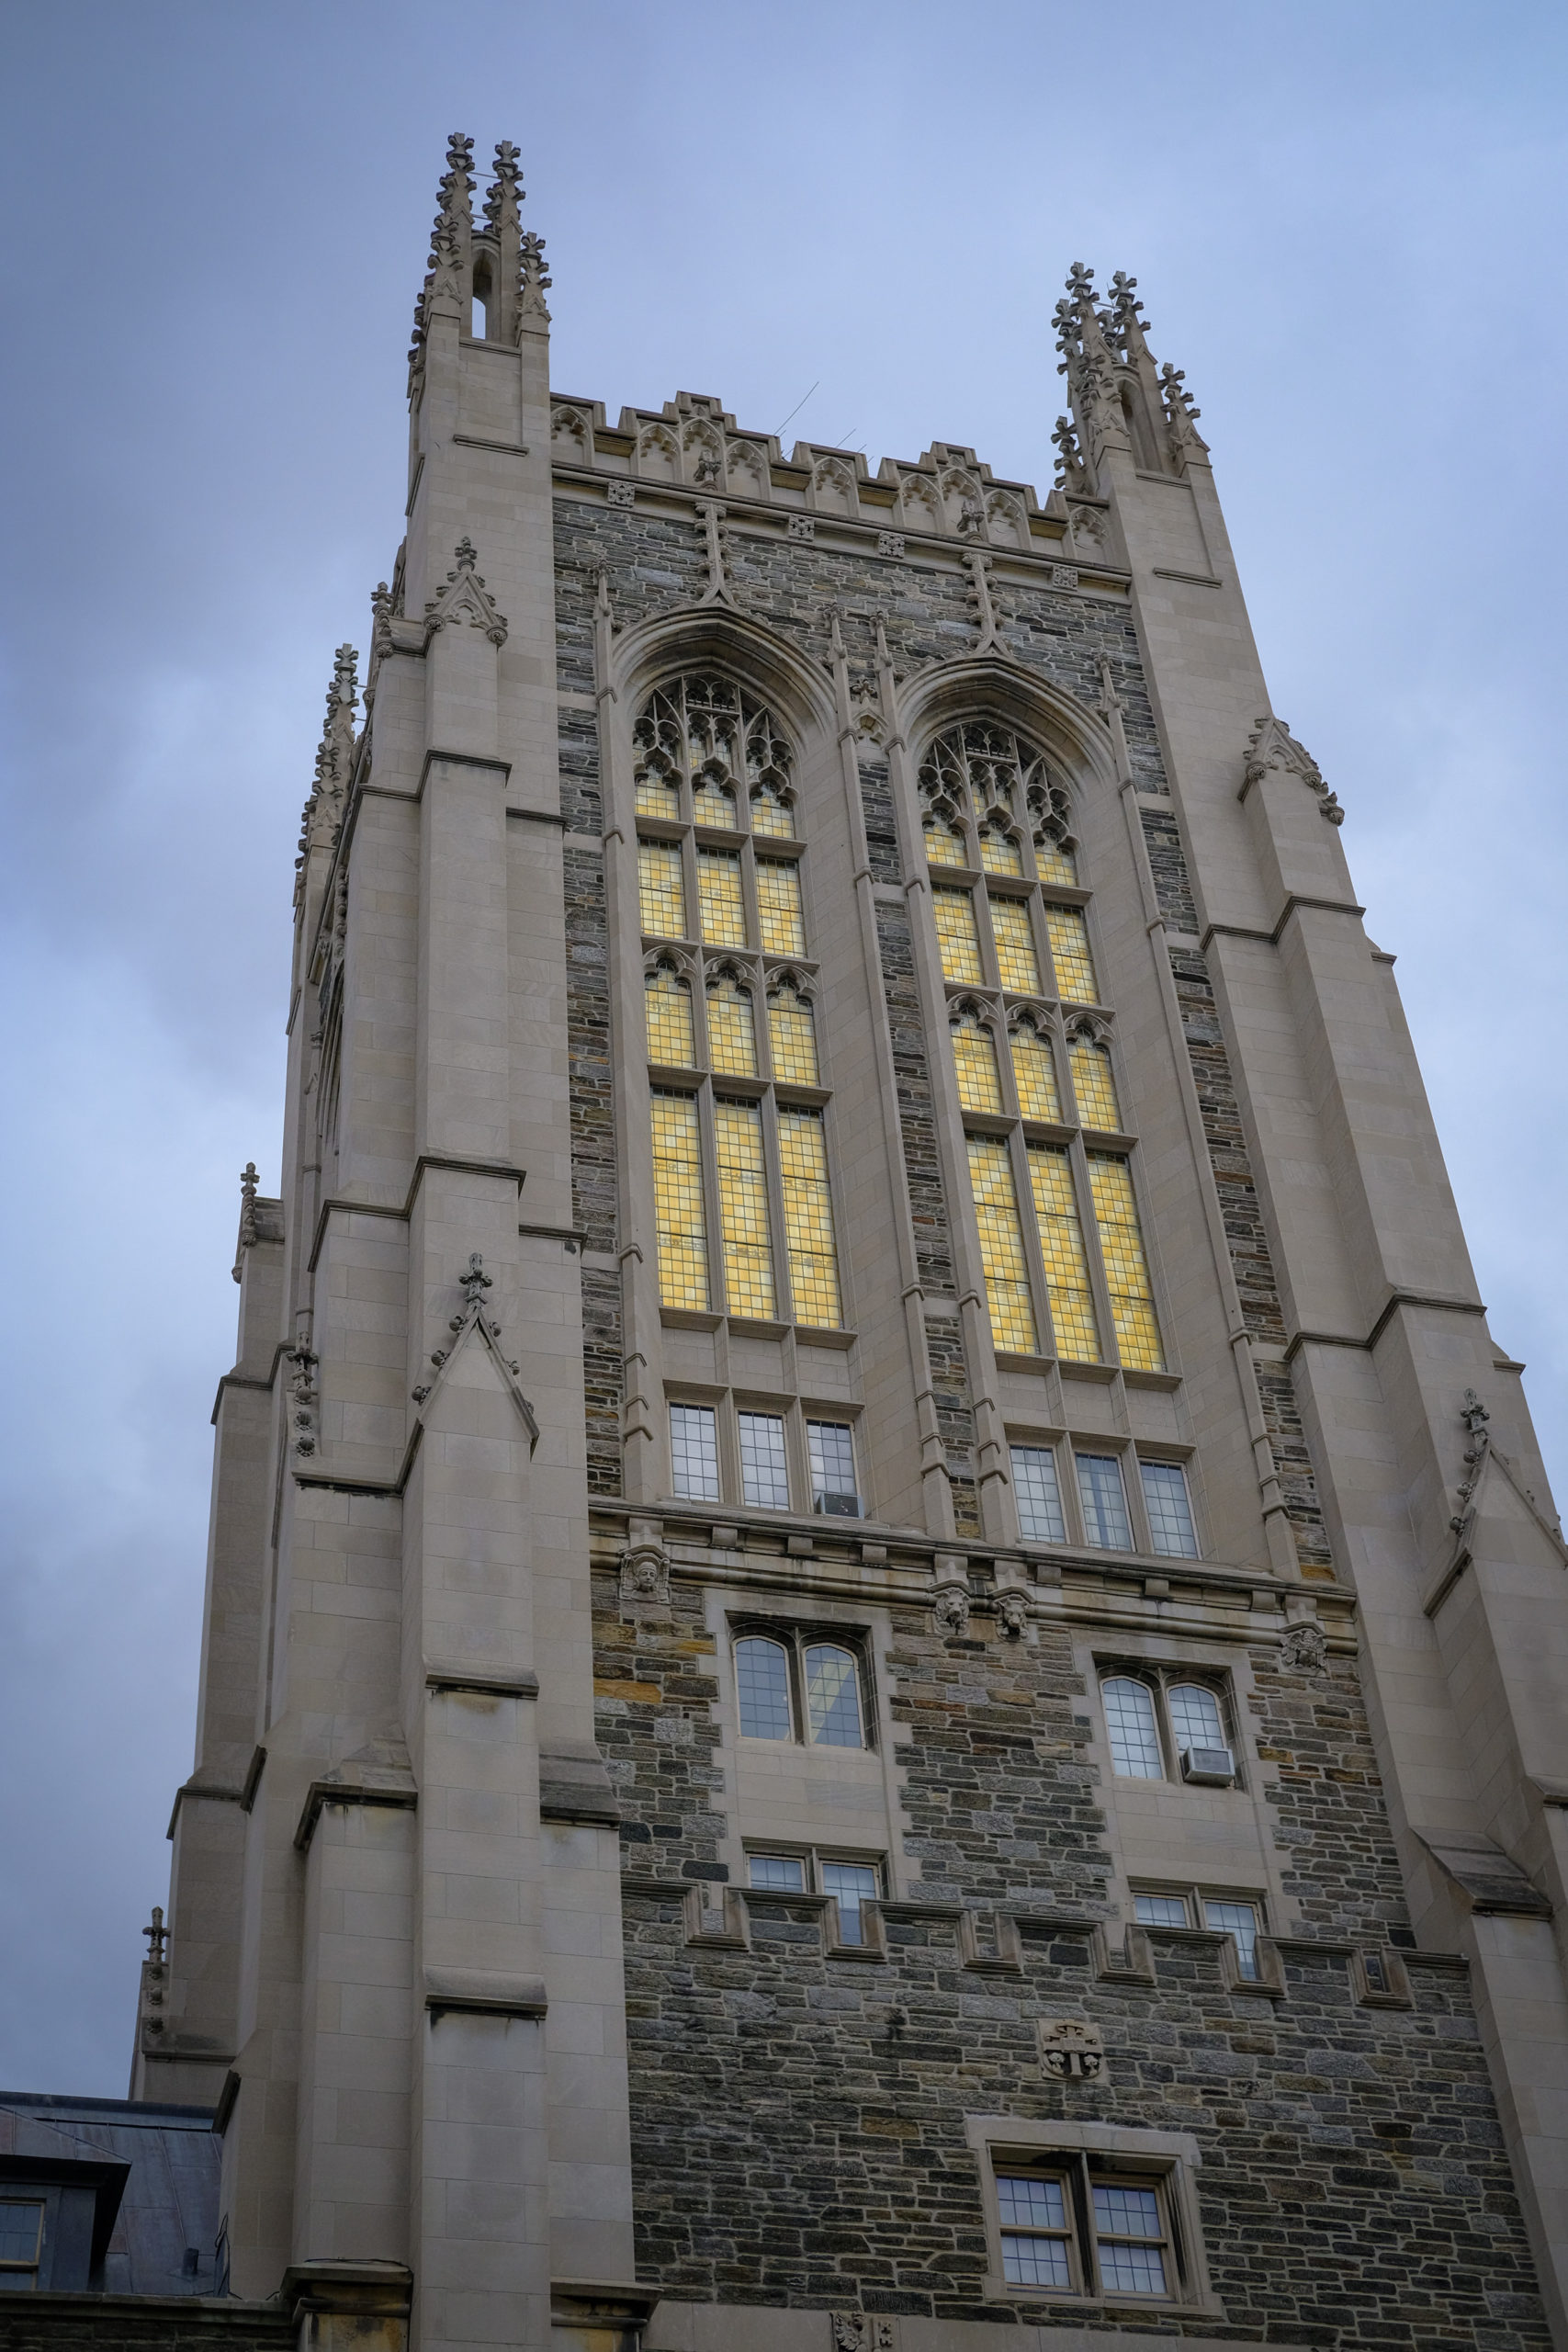 CONSIDERING APPLYING FOR A PH.D PROGRAM? @ Virtual and James Chapel